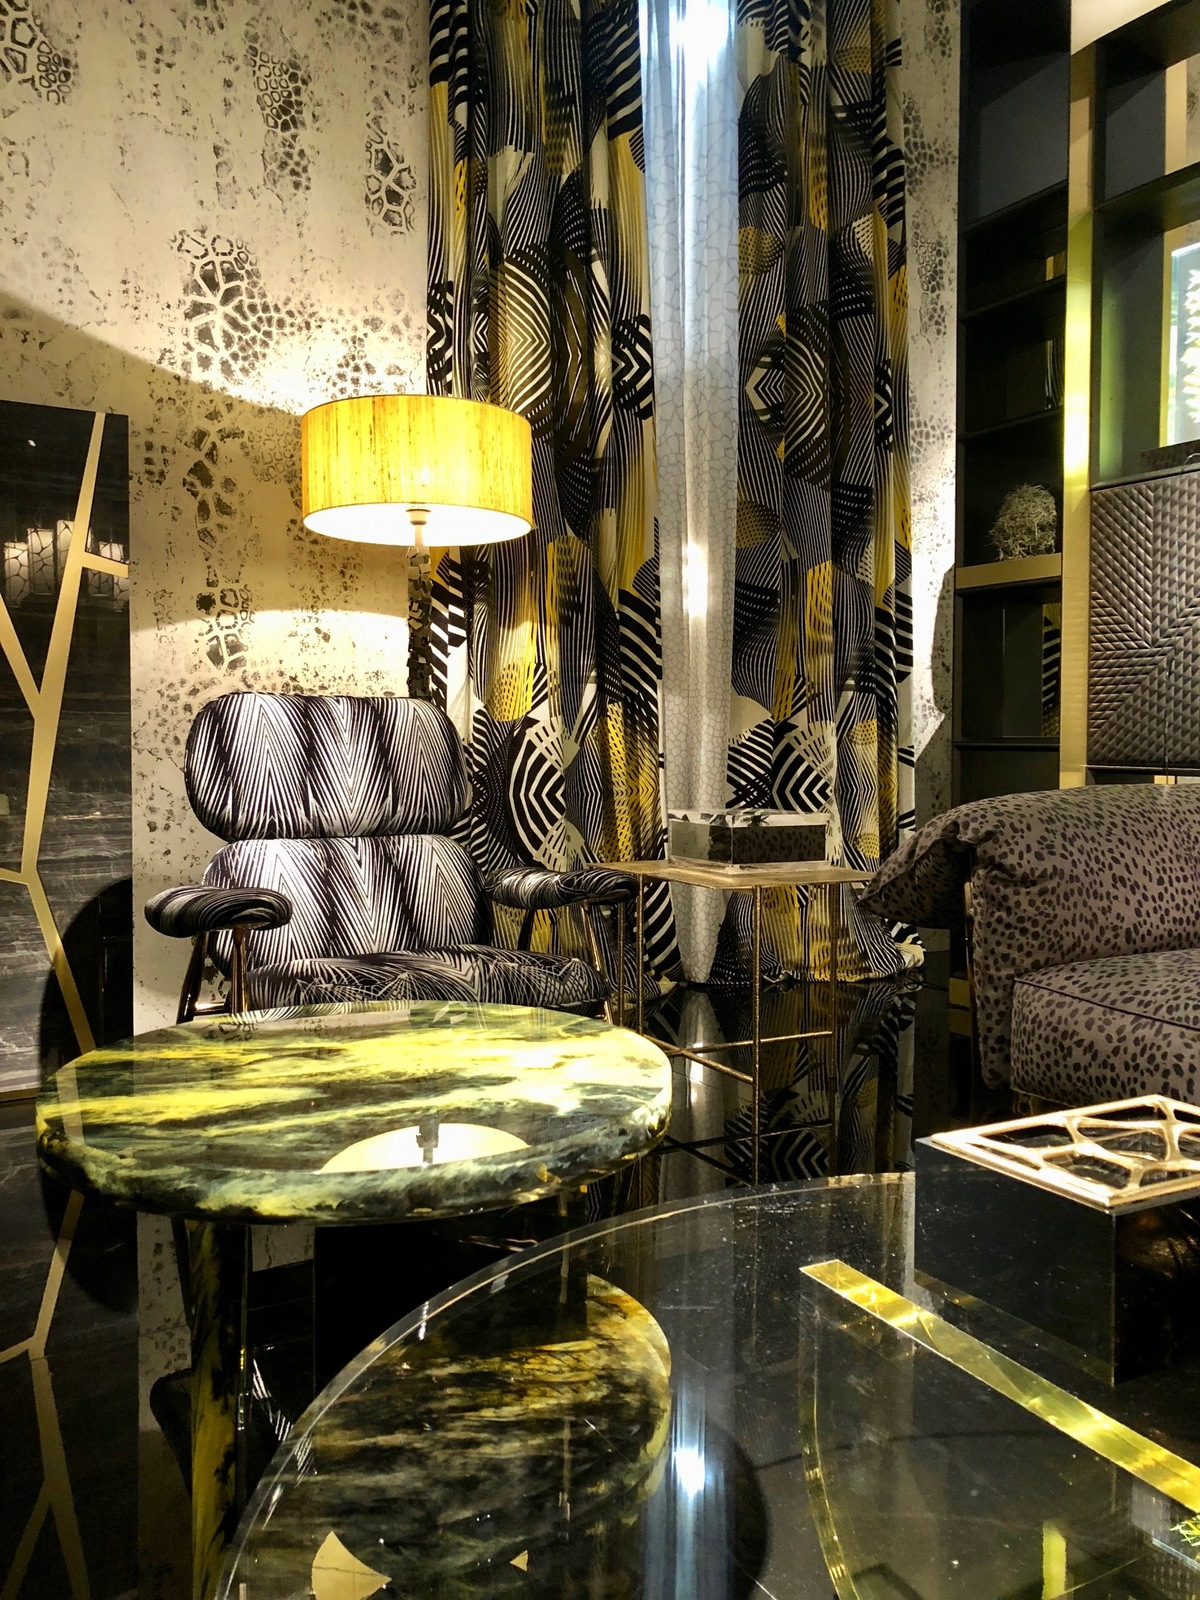 9bfe9c040f5df Today, Roberto Cavalli designs clothing for women and men, accessories,  glasses, lingerie, perfumes and, last but not least, luxurious designer  furniture.